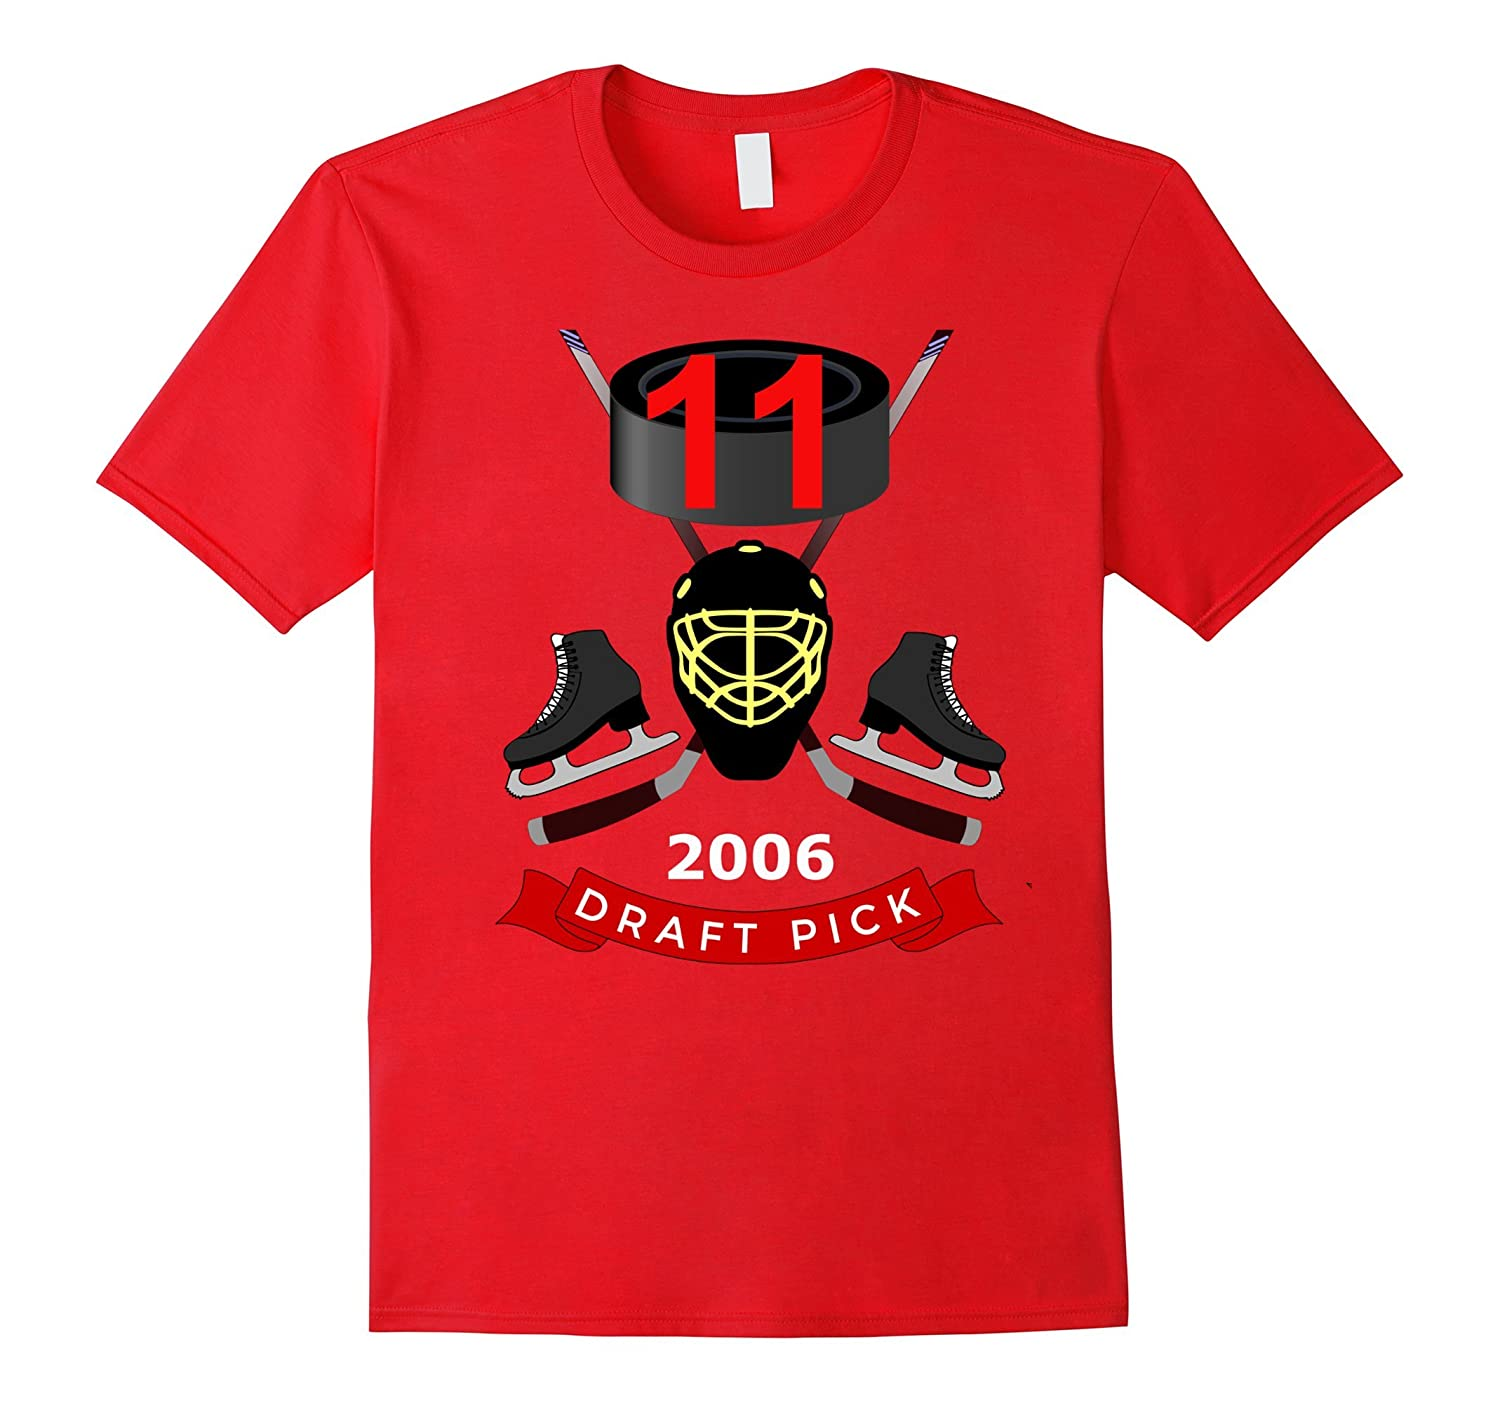 #11 Birthday TShirt - 2006 Draft Pick Hockey Birthday TShirt-TH